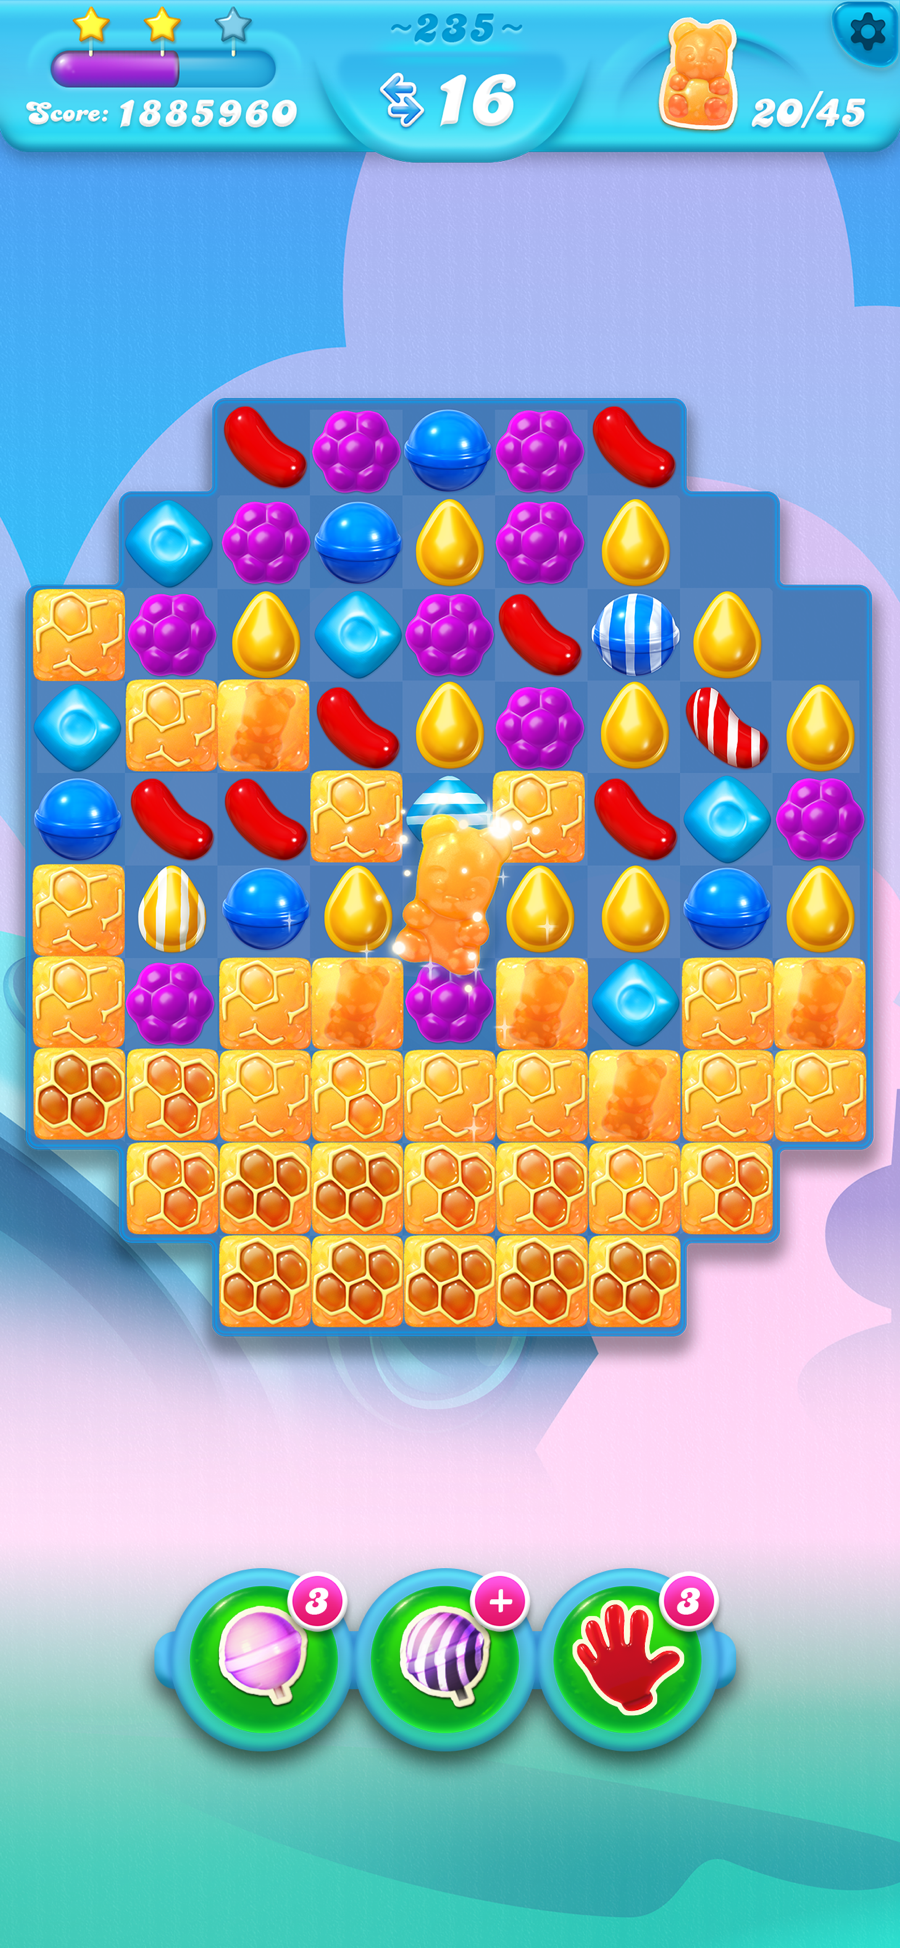 Candy Crush Soda Saga On The App Store Candy Crush Soda Saga Soda Saga Candy Crush